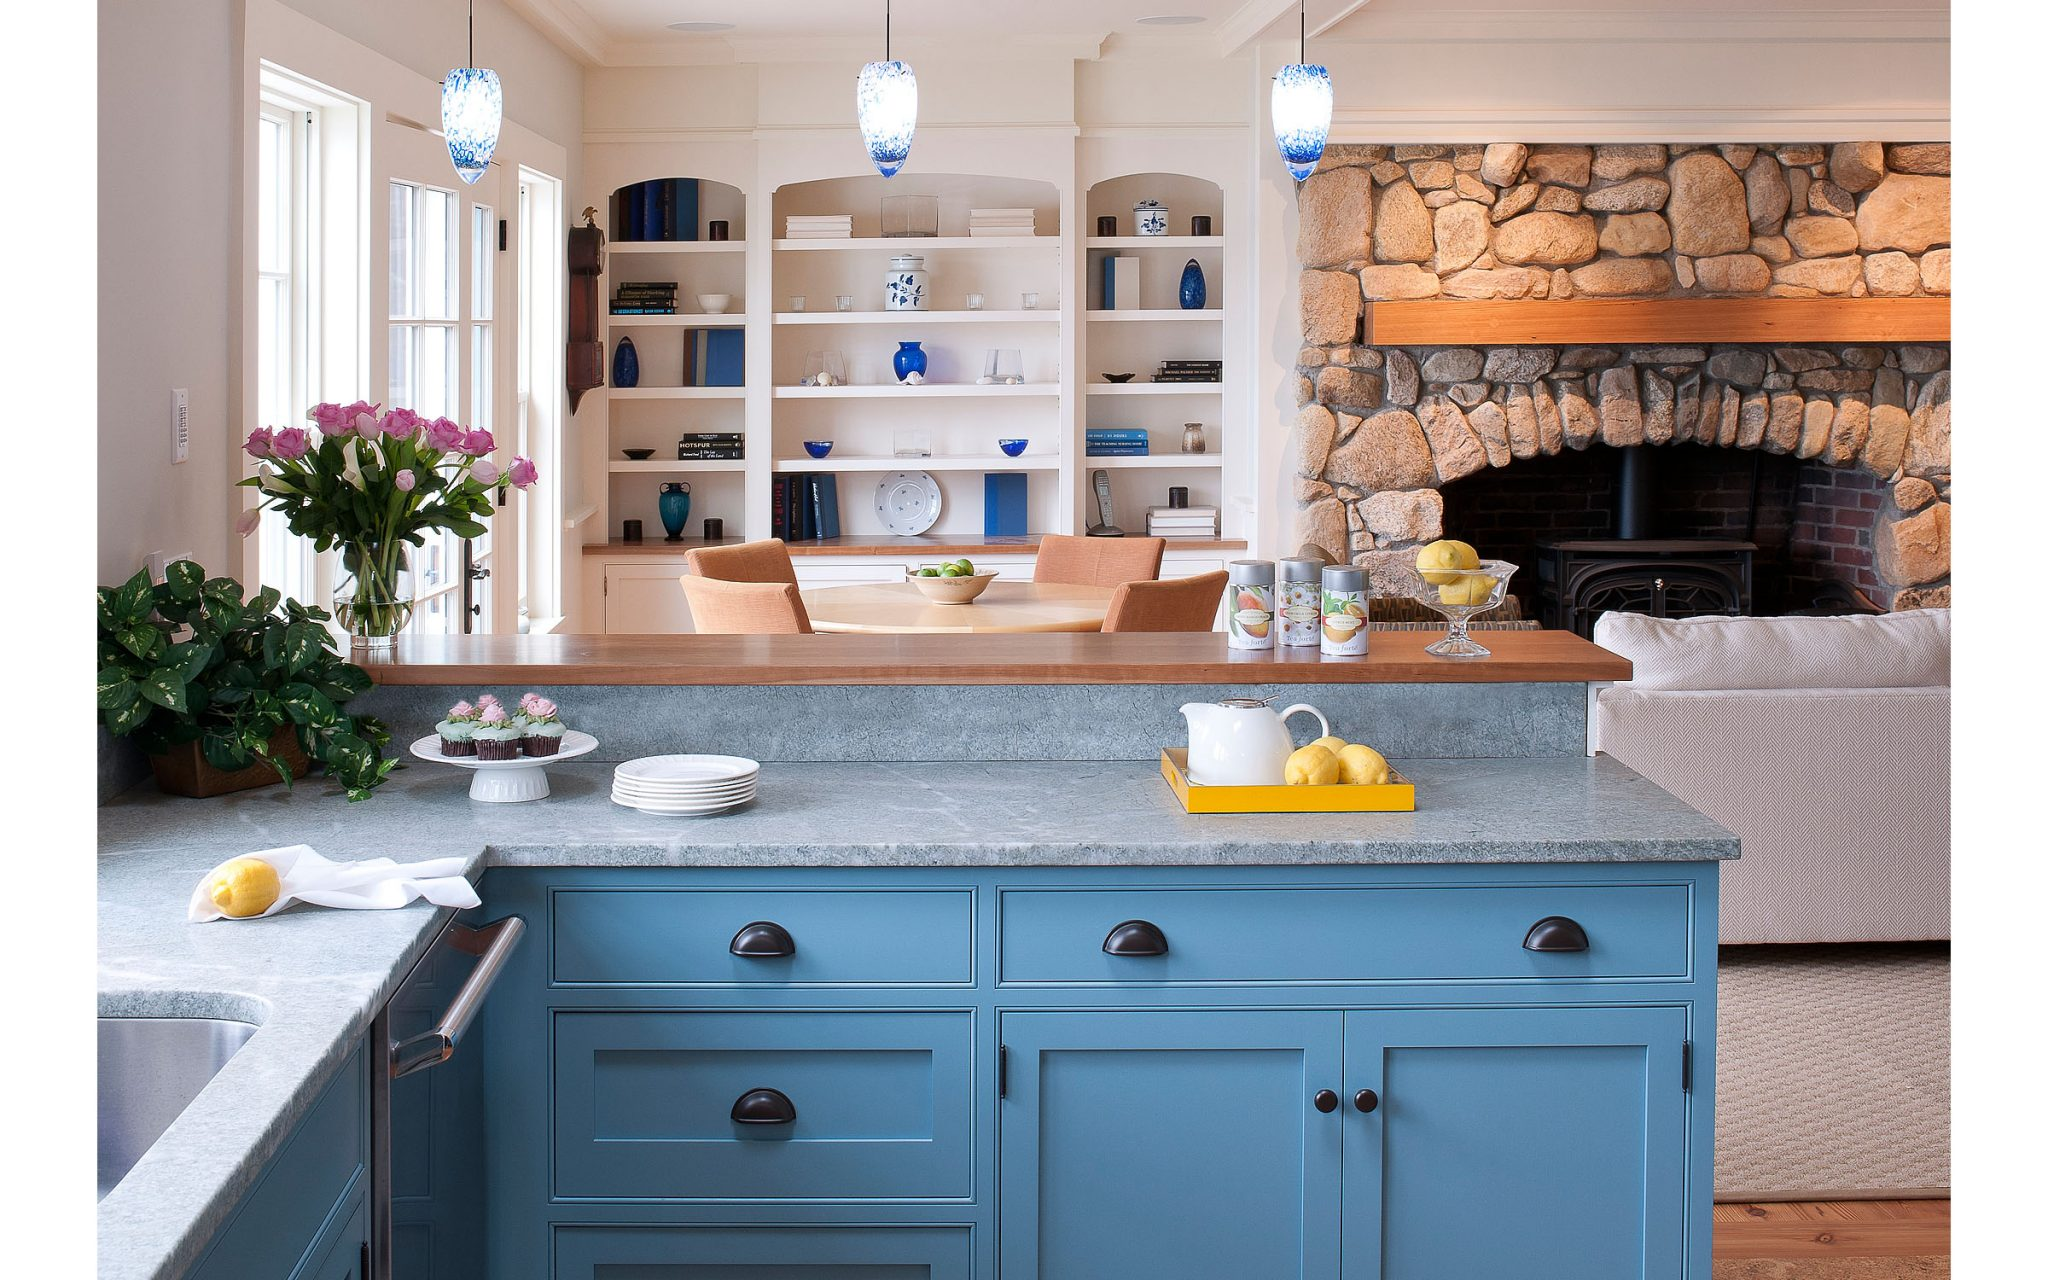 Colorful Kitchen Design Ideas - Elizabeth Swartz Interiors on colorful kitchen cabinets, colorful kitchen decorating ideas, colorful ideas for desk, colorful ideas for outdoor dining, colorful ideas for backyard, colorful french country kitchen, colorful white kitchens, colorful kitchen backsplash,